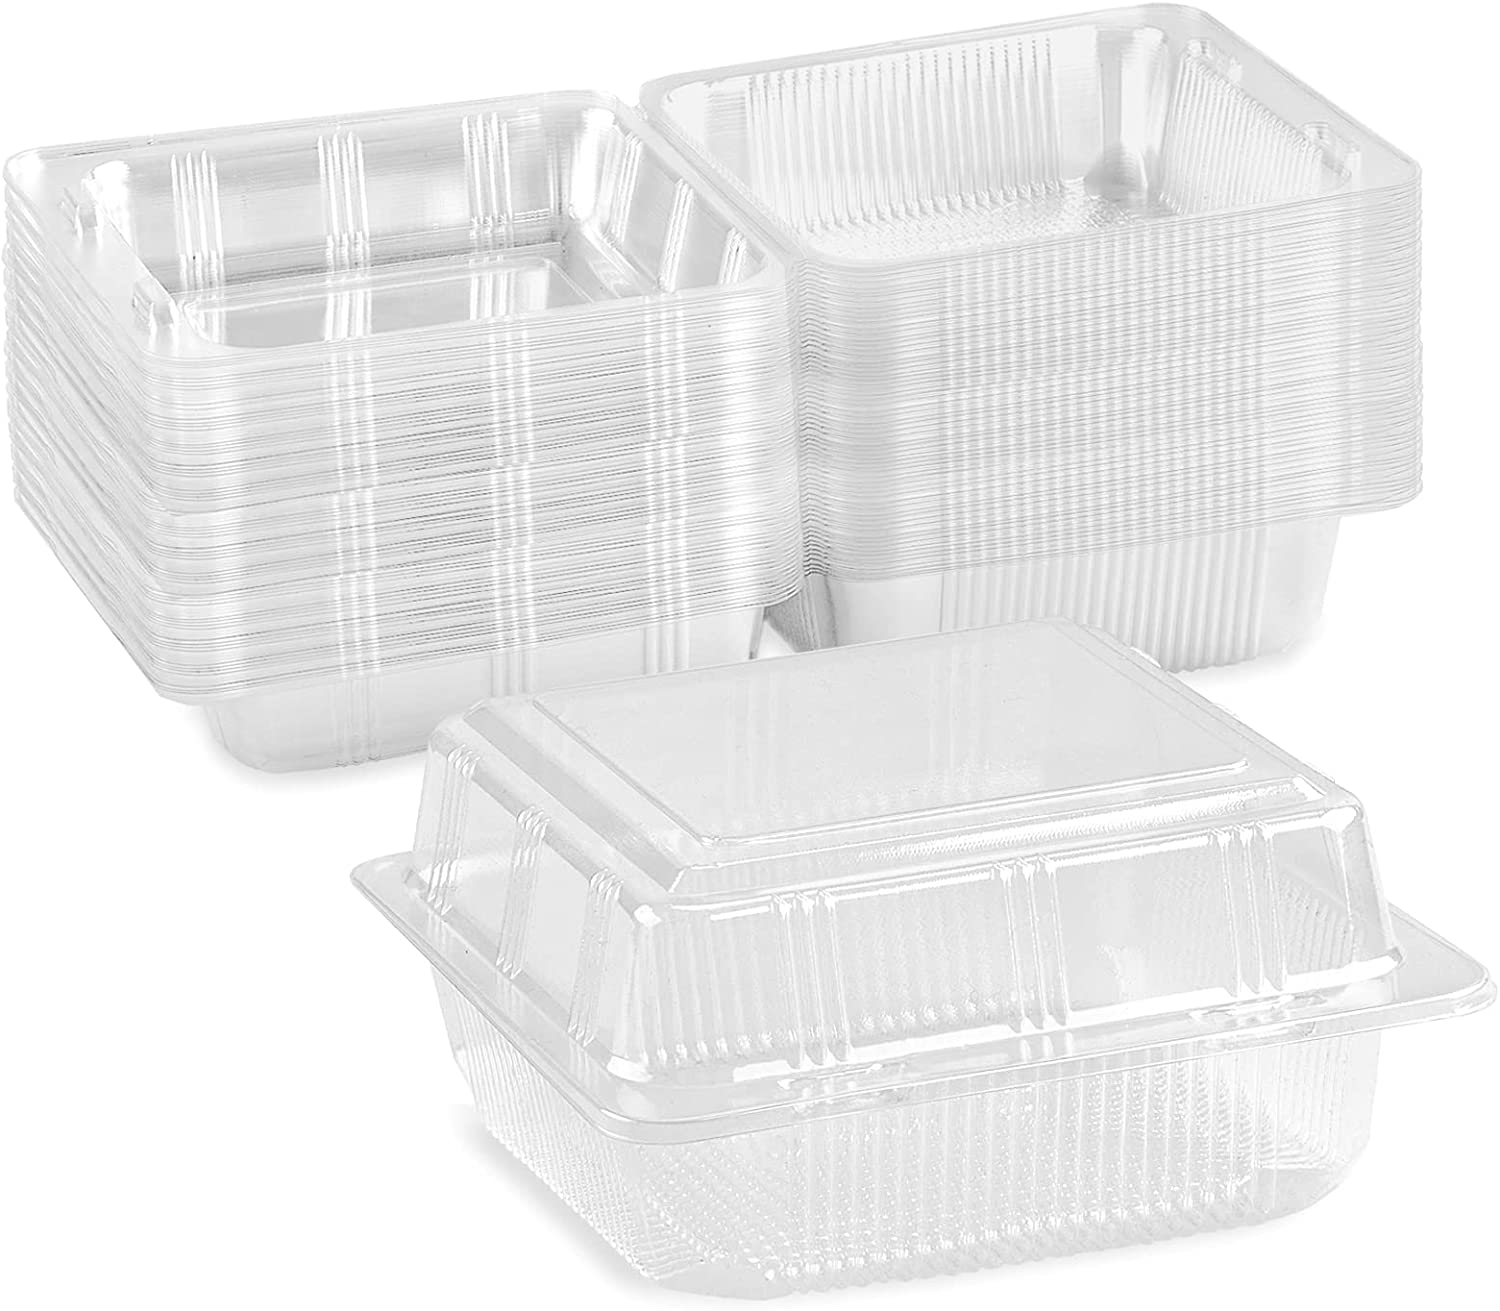 50Pack Clear Plastic Square Hinged Food Containers, Disposable Food Containers with Lids Take Out Clamshell Dessert Boxes for Cake Piece Sandwich Salad Pasta (5.1in x 5.3in x 2.6in)